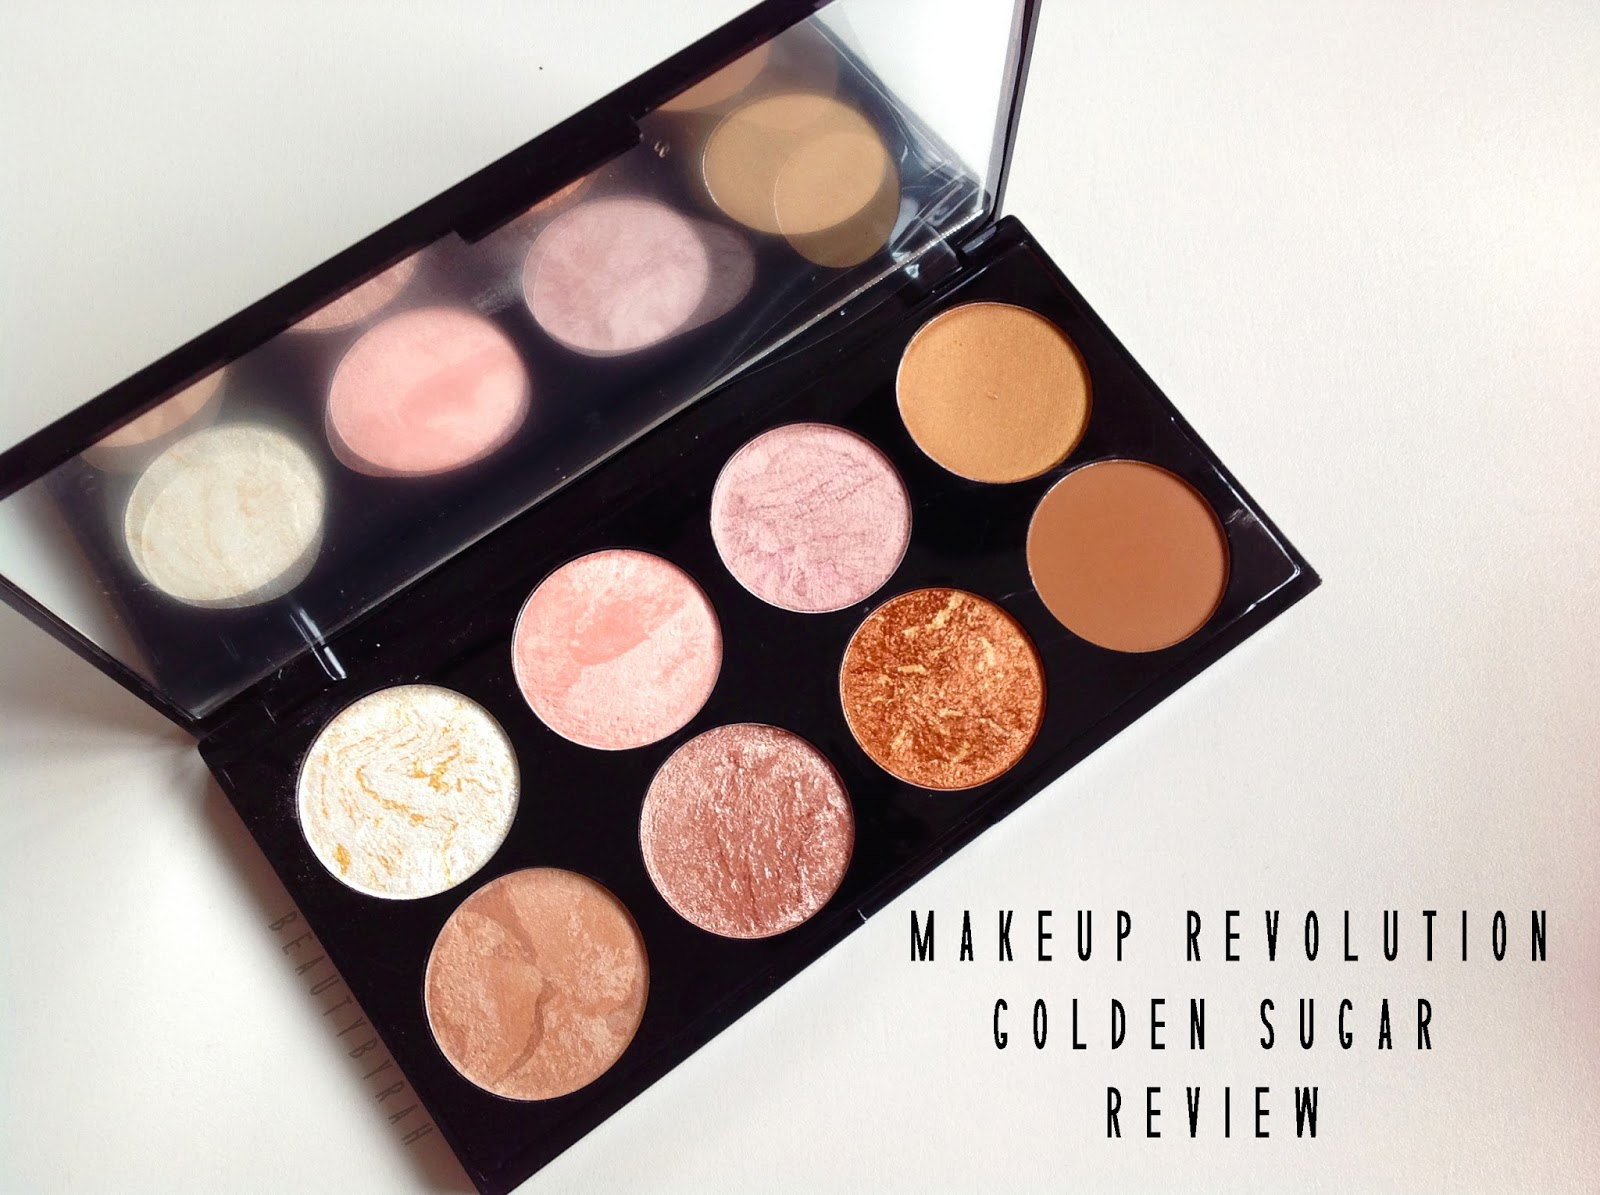 Makeup Revolution Ultra Blush and Contour Palette in Golden Sugar Review and swatches